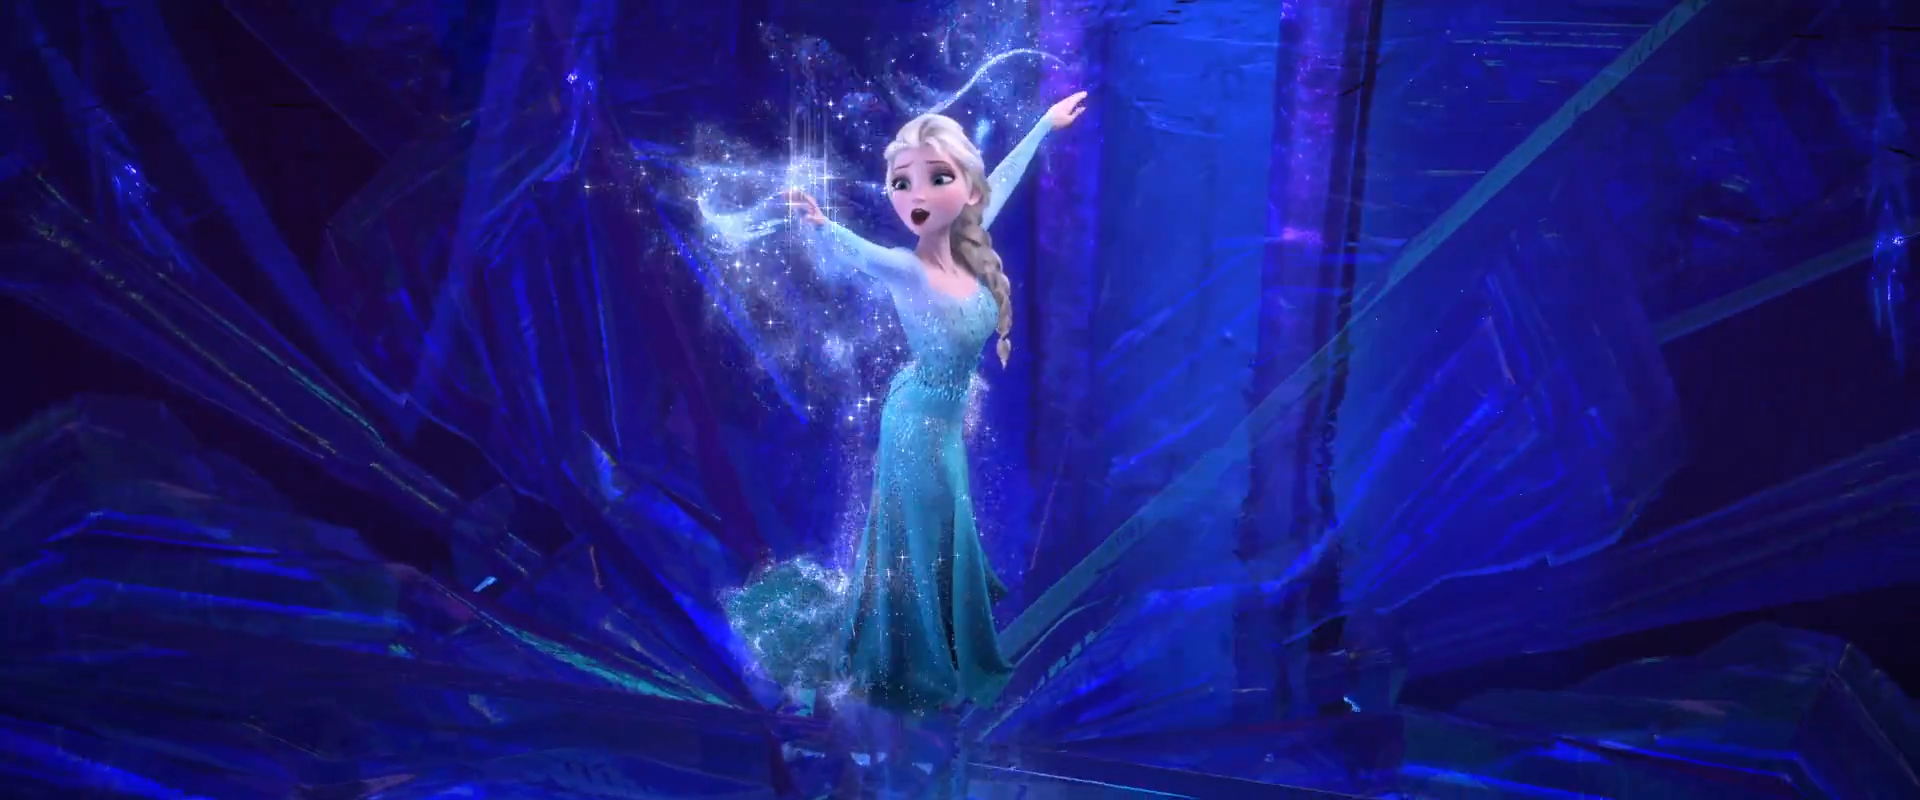 Let It Go Hd Screencaps Elsa The Snow Queen Photo